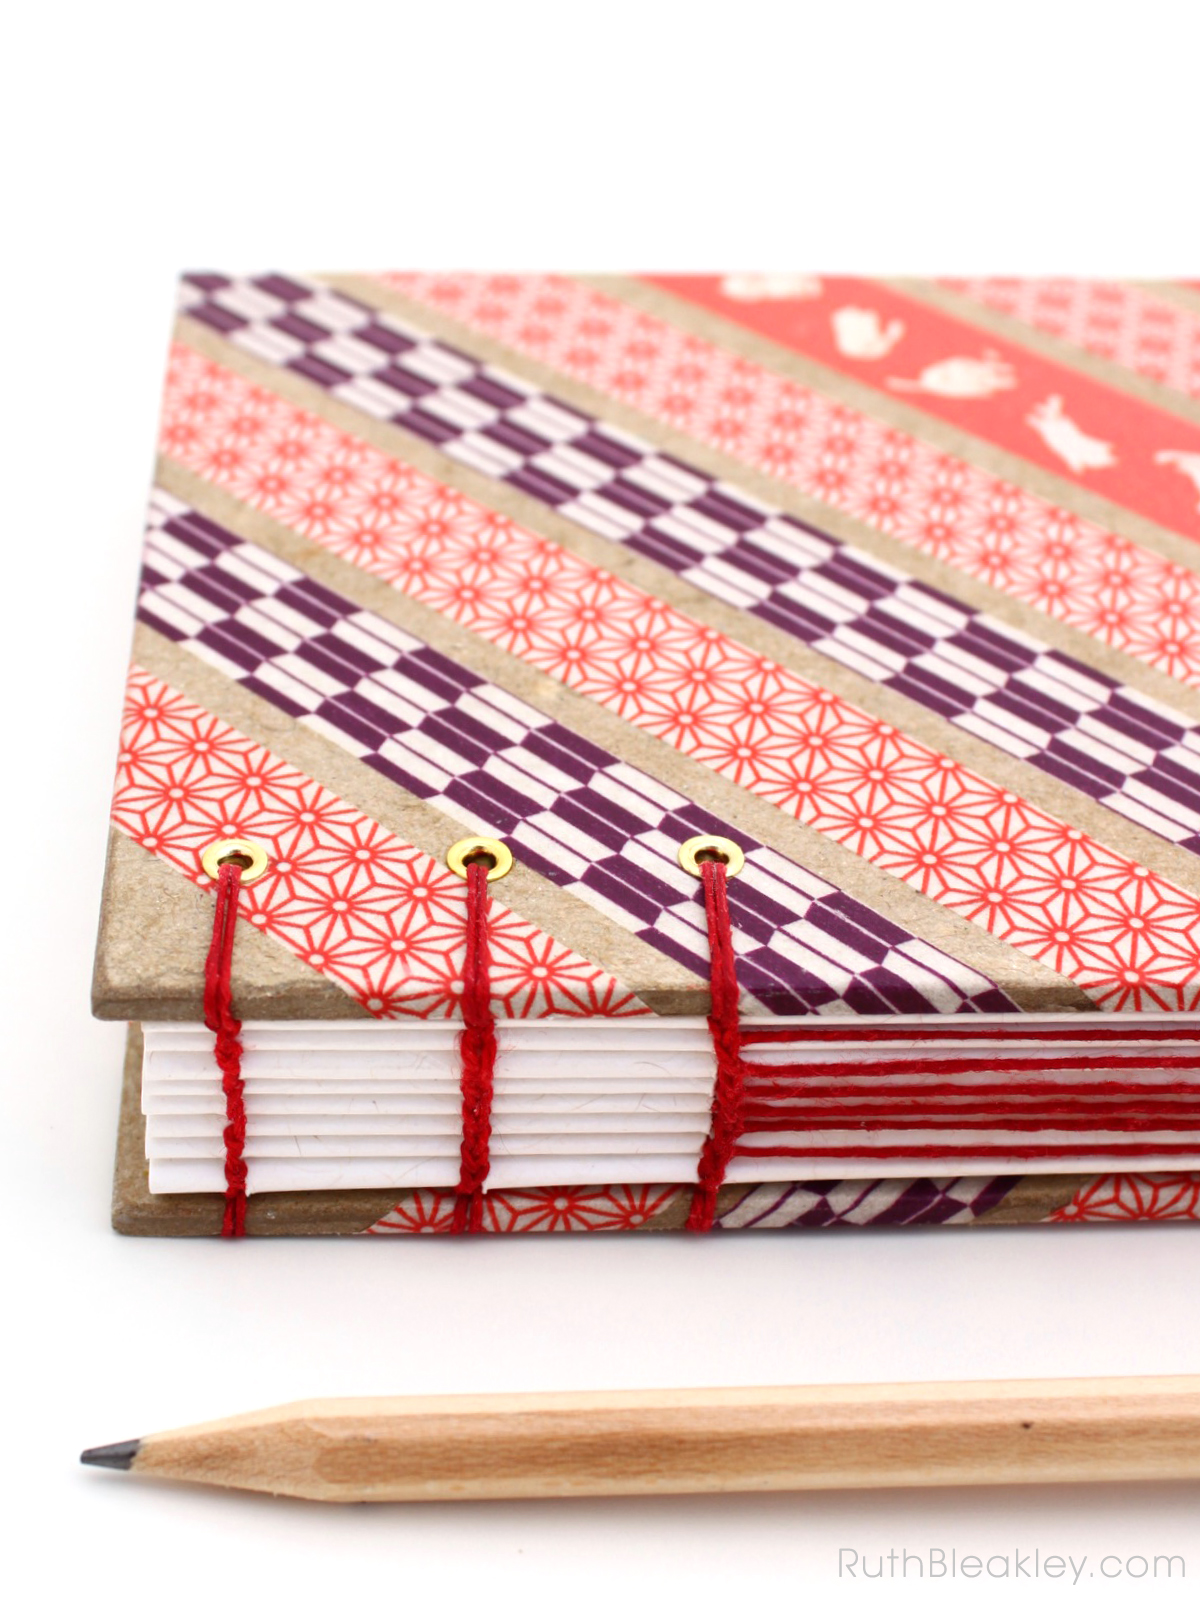 Red and Purple Geometric Washi Tape Journal handmade by Ruth Bleakley - 2